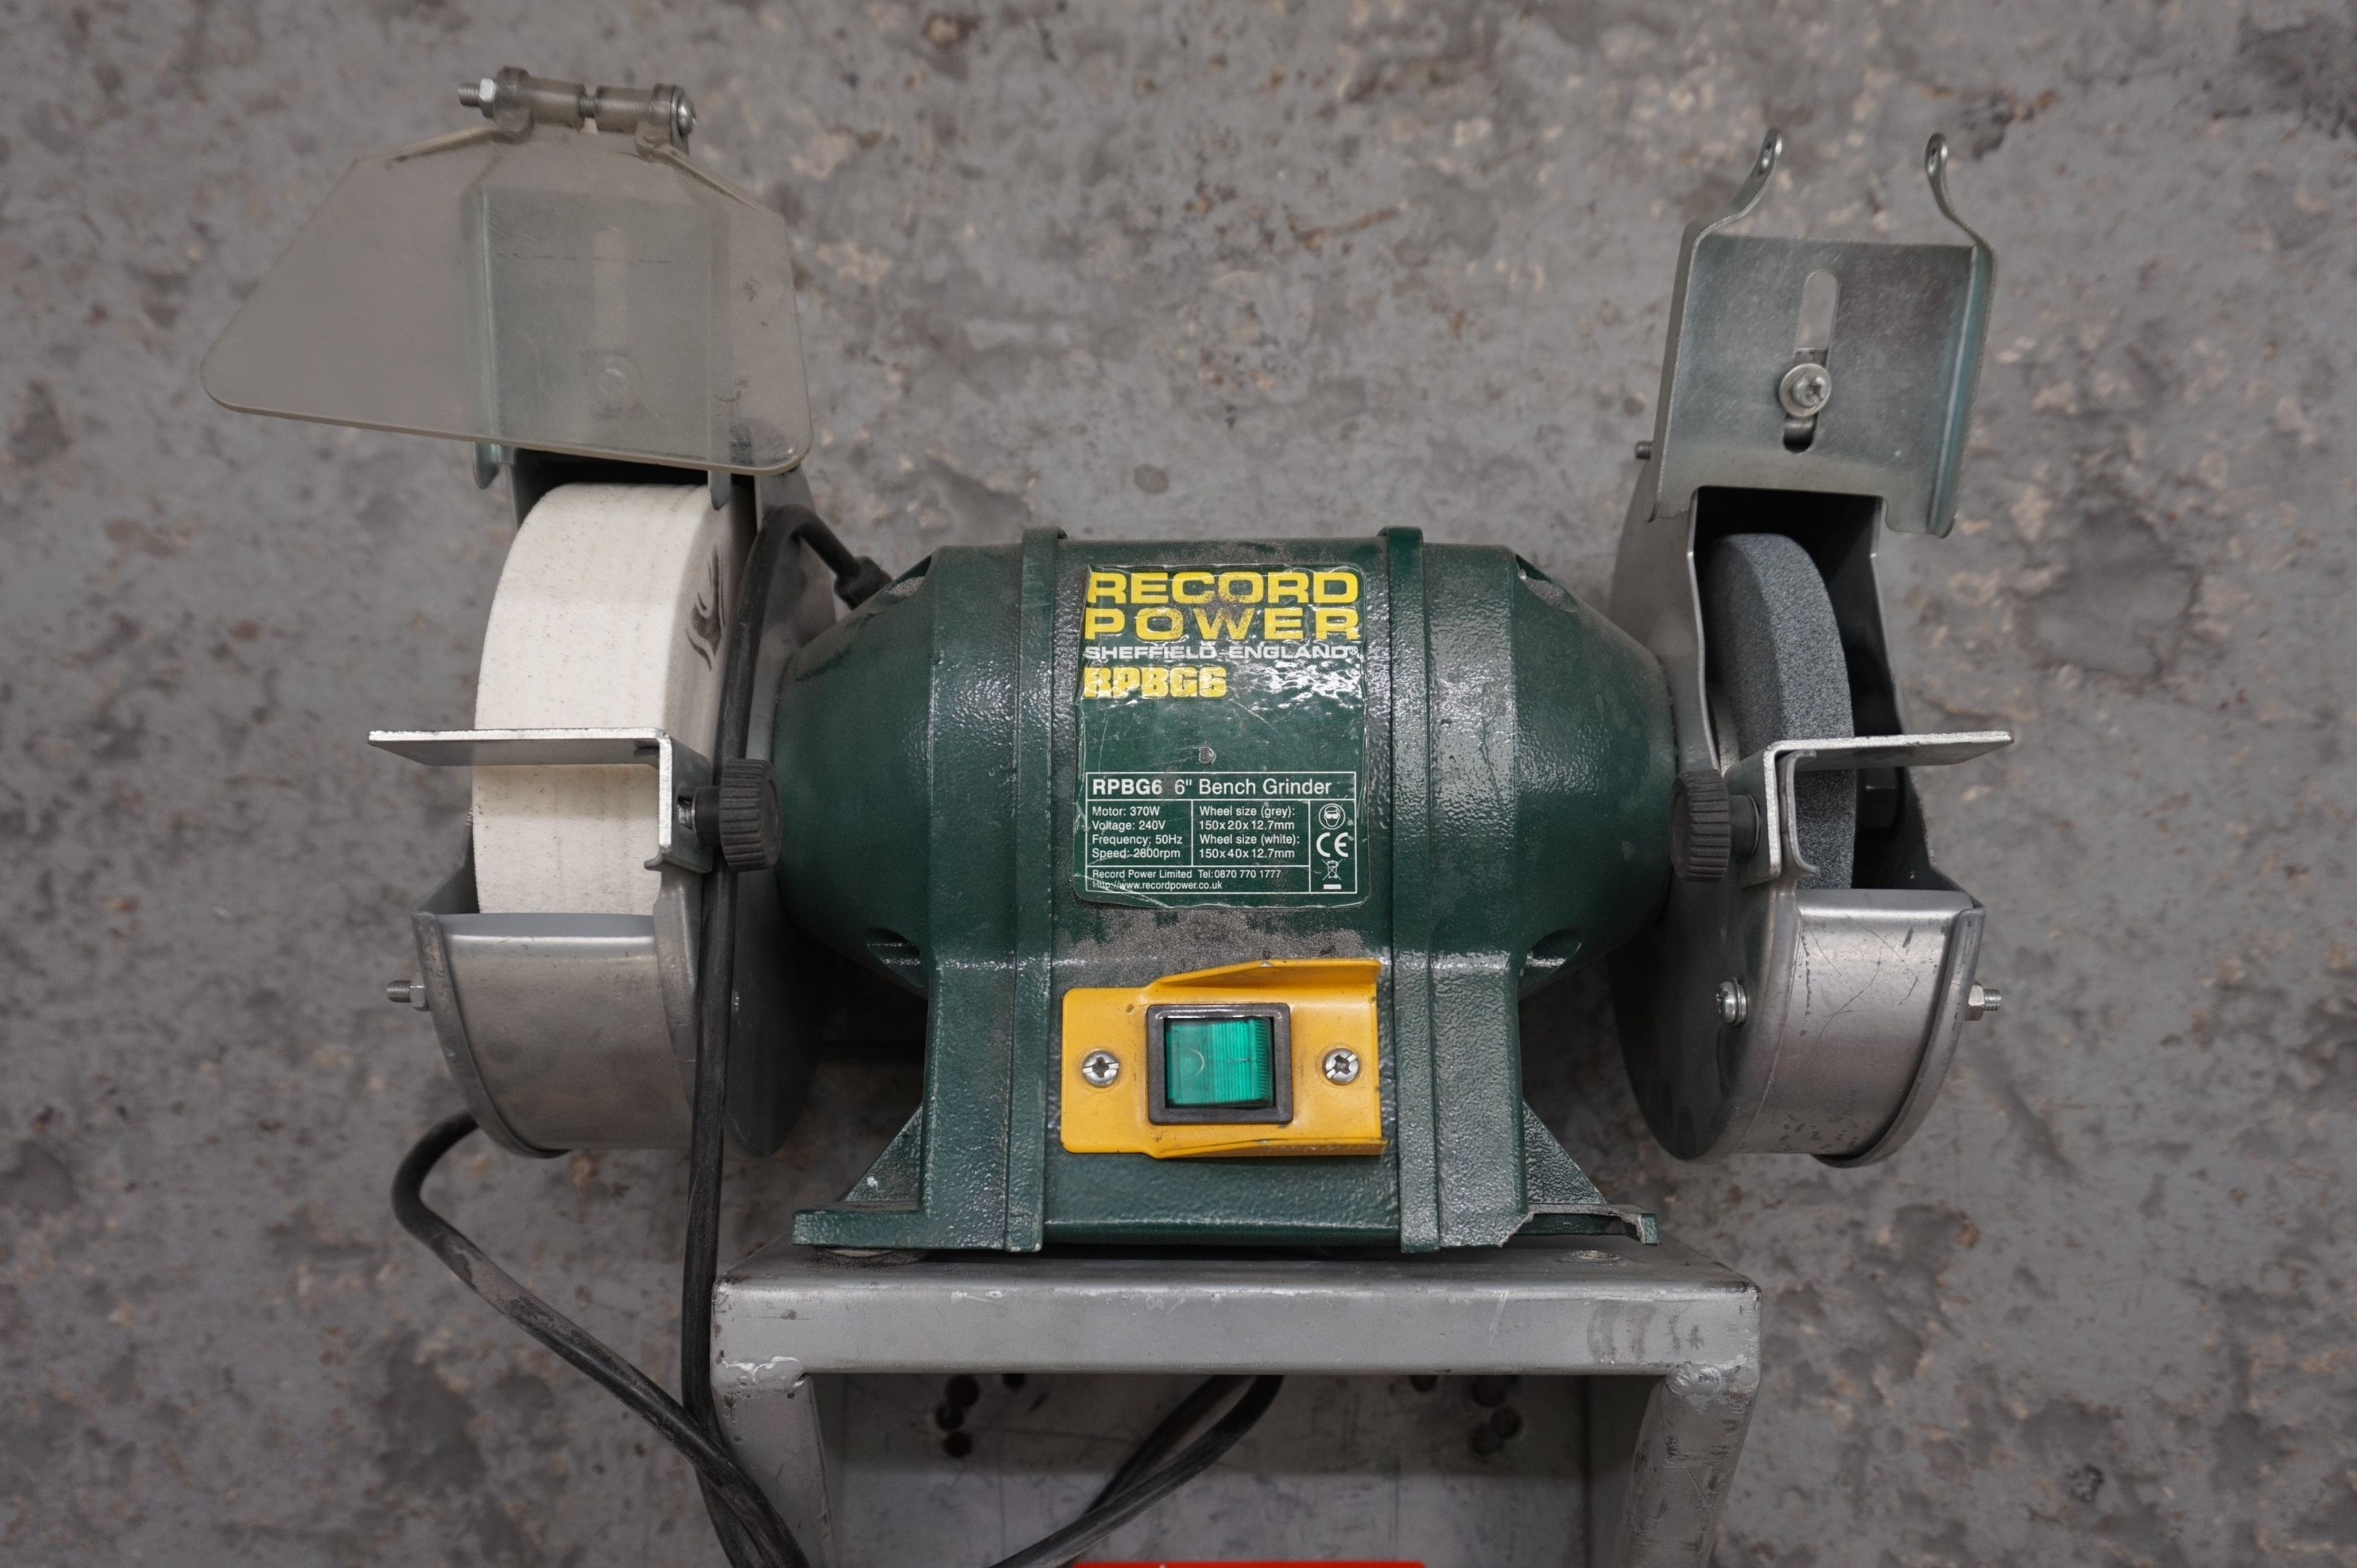 6 Record Power Bench Grinder